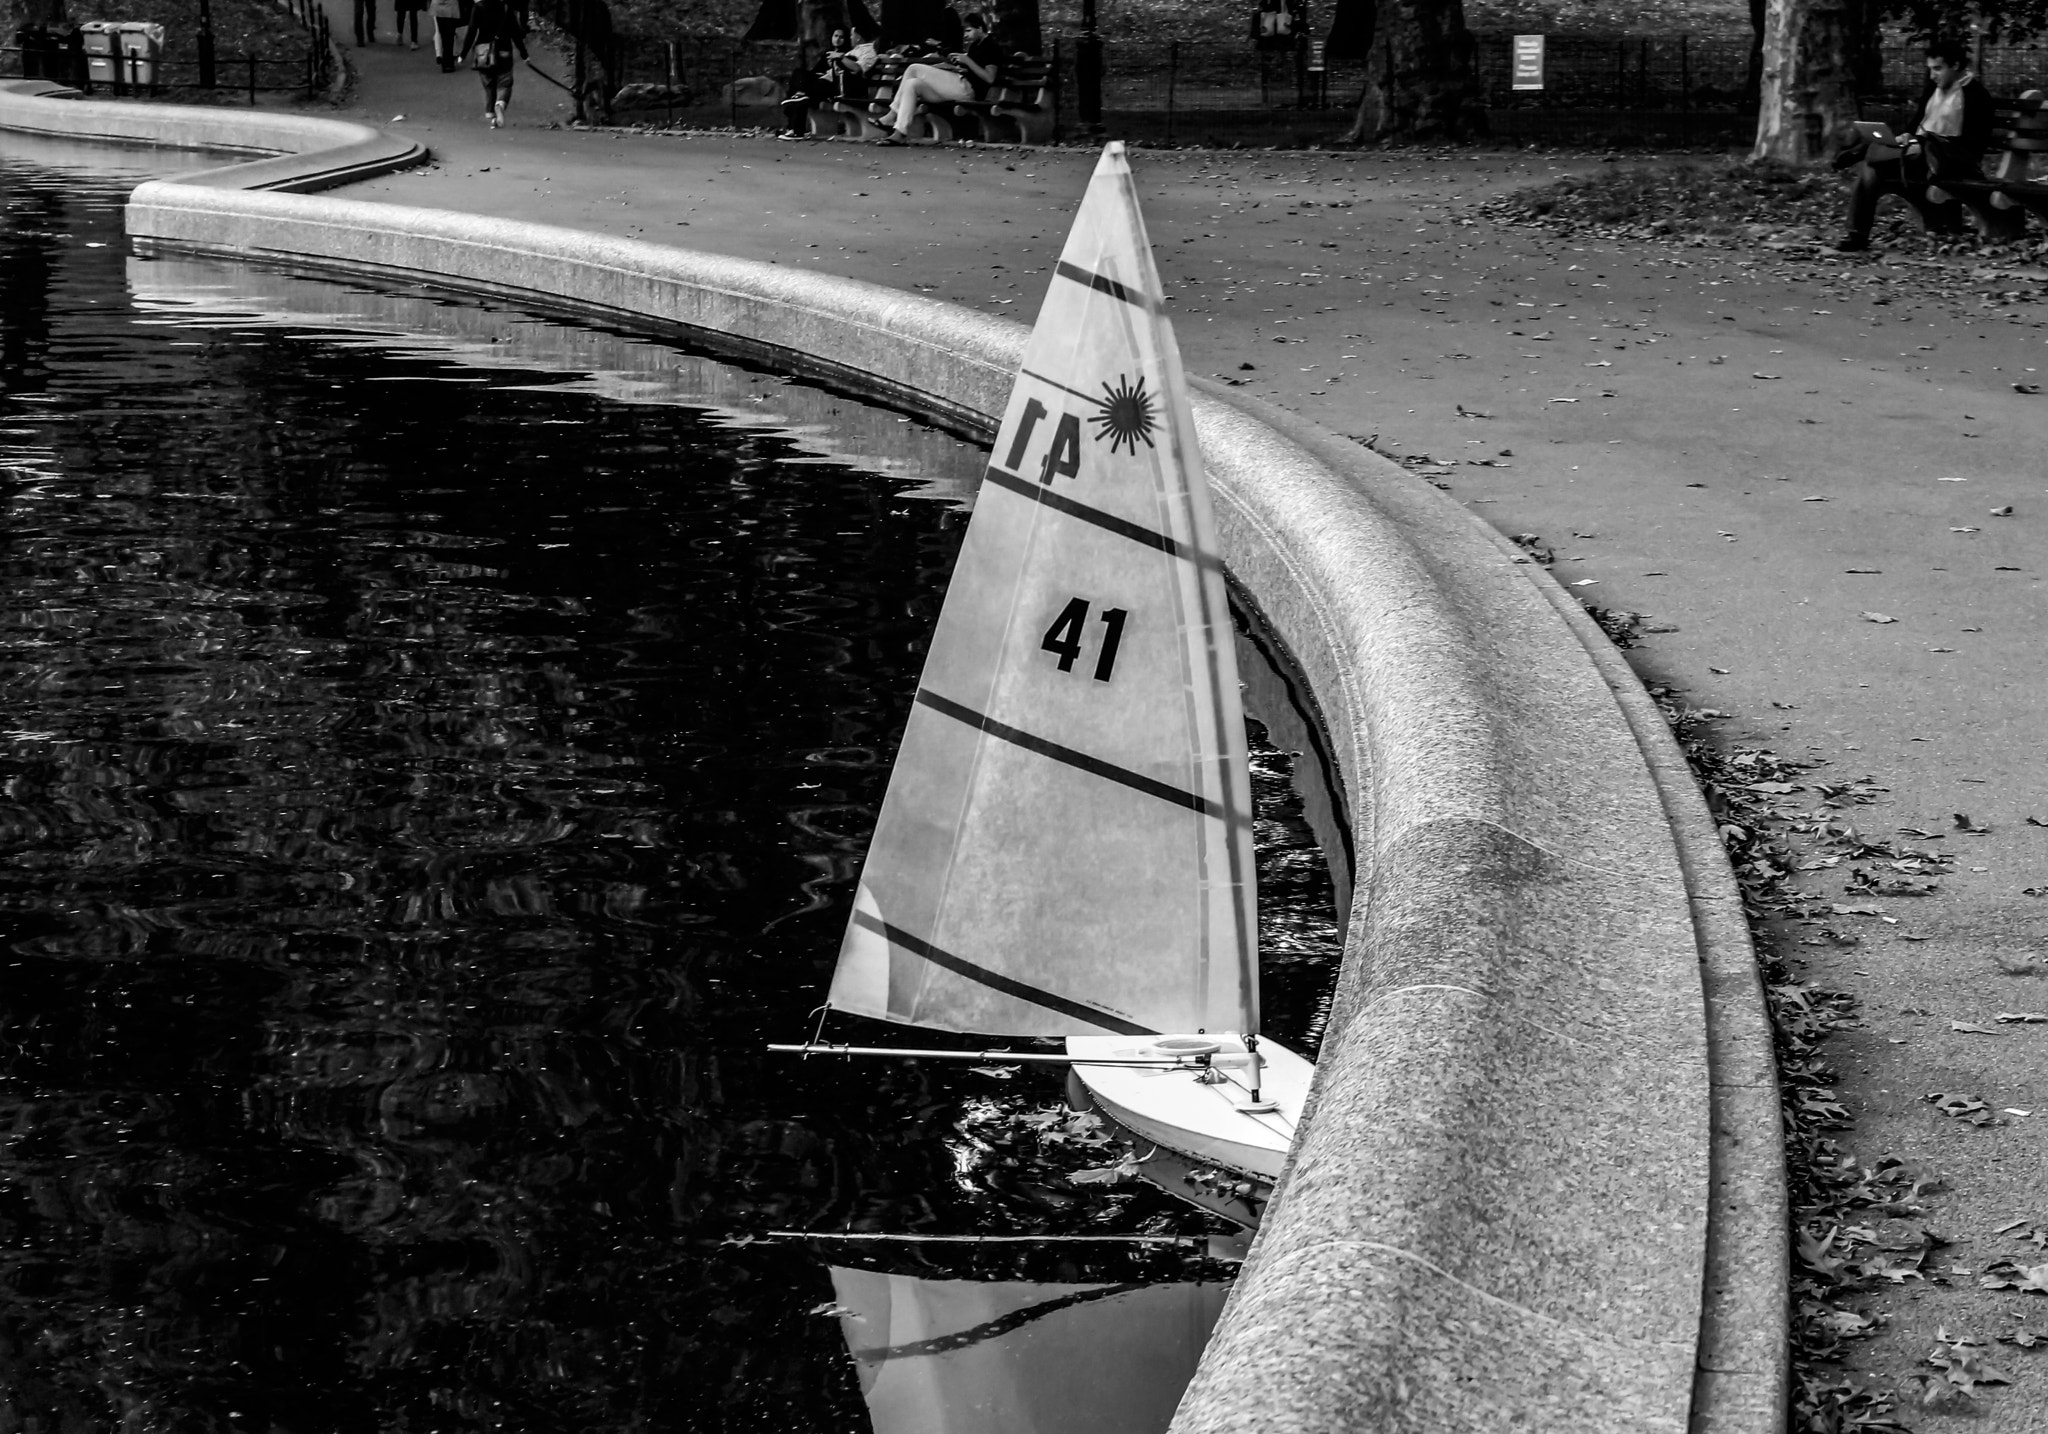 Photograph Central Park Sailboat by Georgina Gomez on 500px